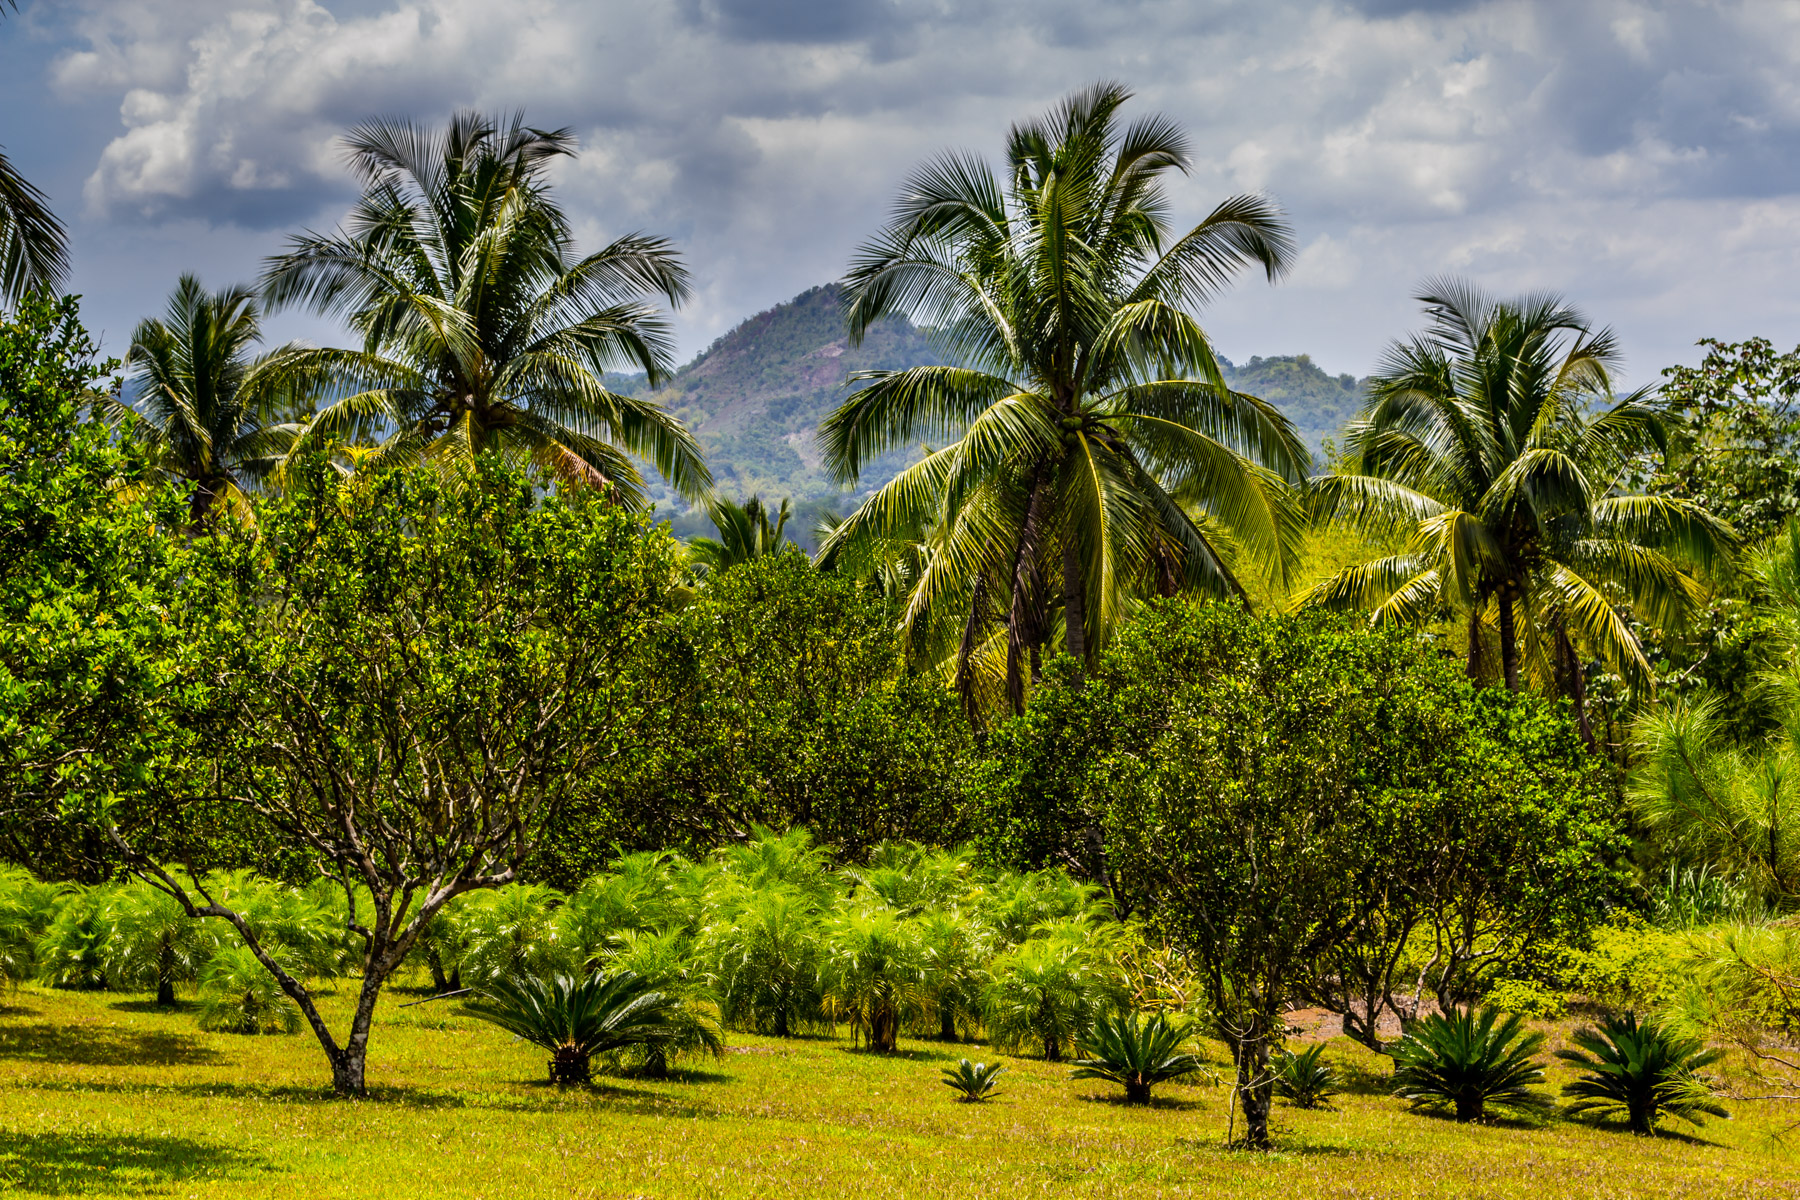 Storm clouds gather over a stand of palm trees on a plantation in the mountains of western Jamaica.